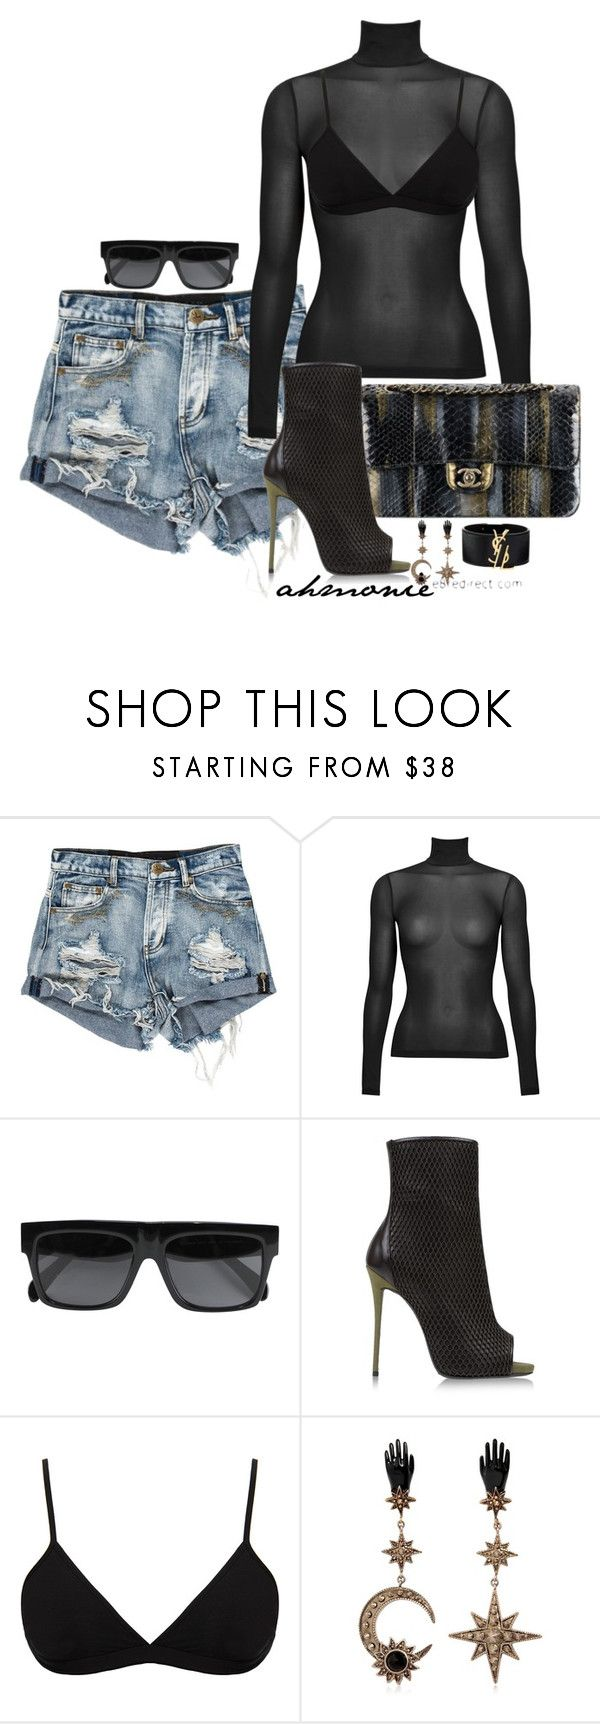 """Untitled #542"" by ahmonie ❤ liked on Polyvore featuring CÉLINE, Giuseppe Zanotti, Helmut Lang, Roberto Cavalli and Yves Saint Laurent"